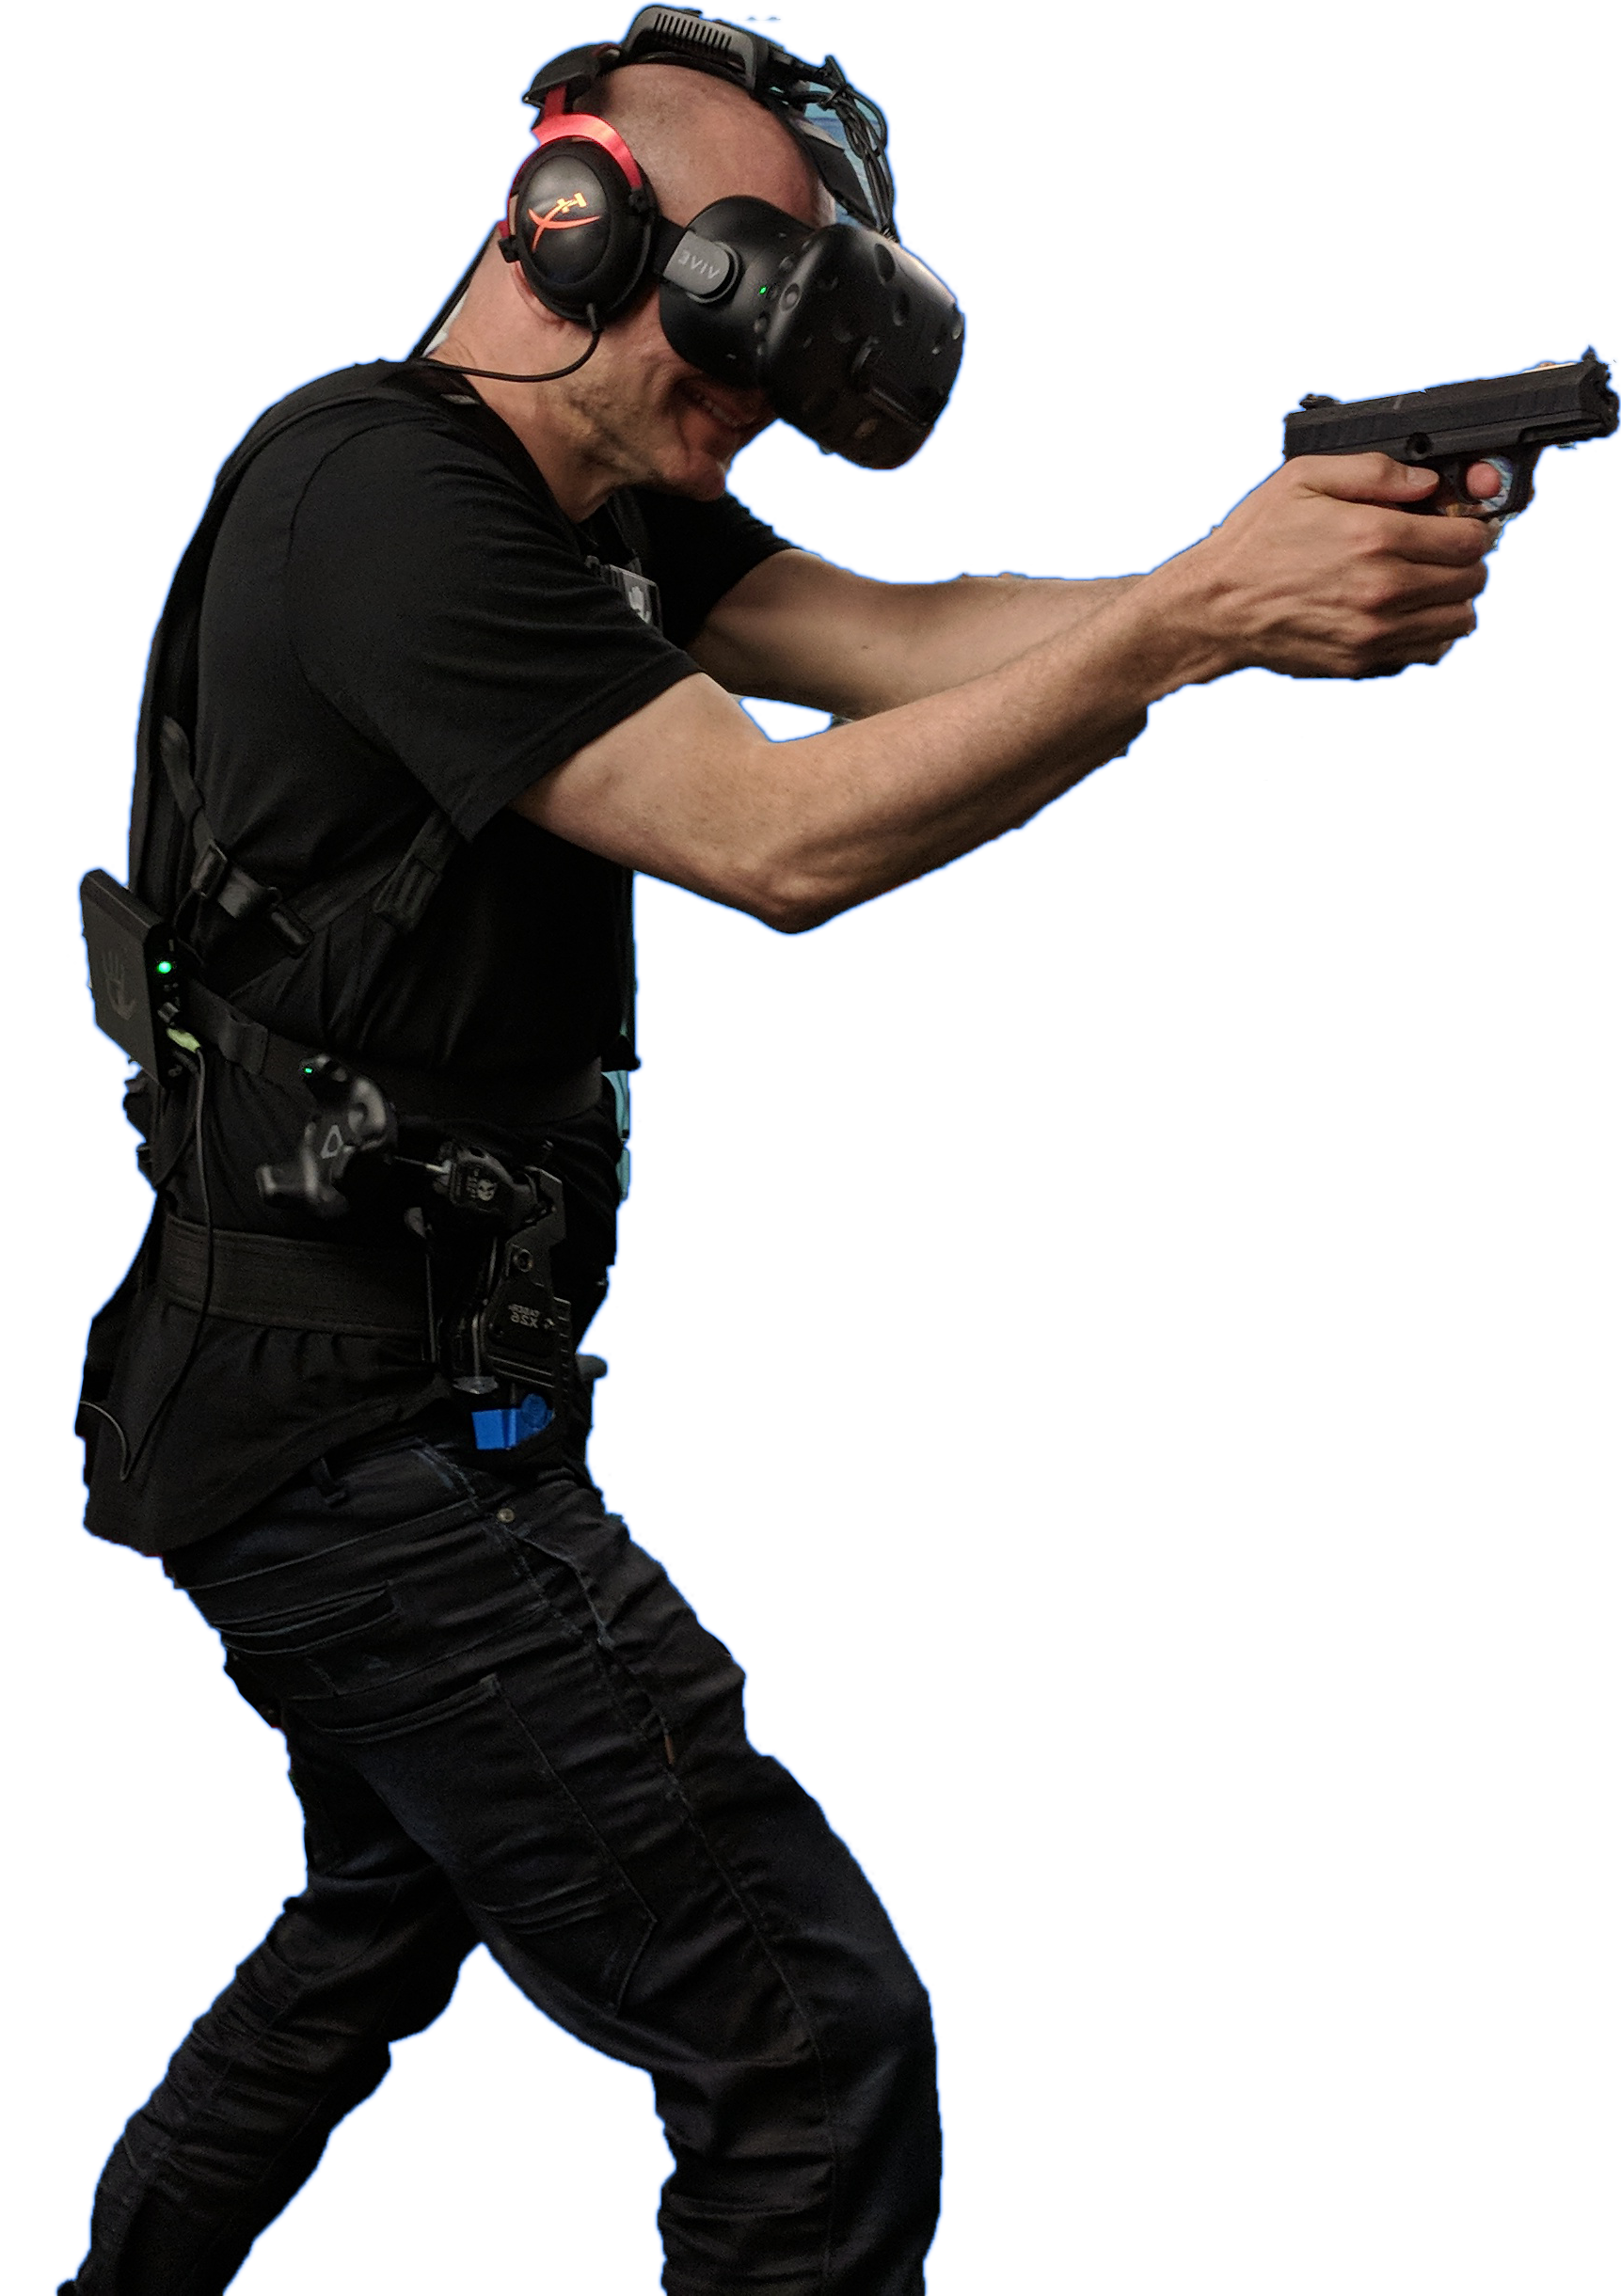 Police Officer training in virtual reality